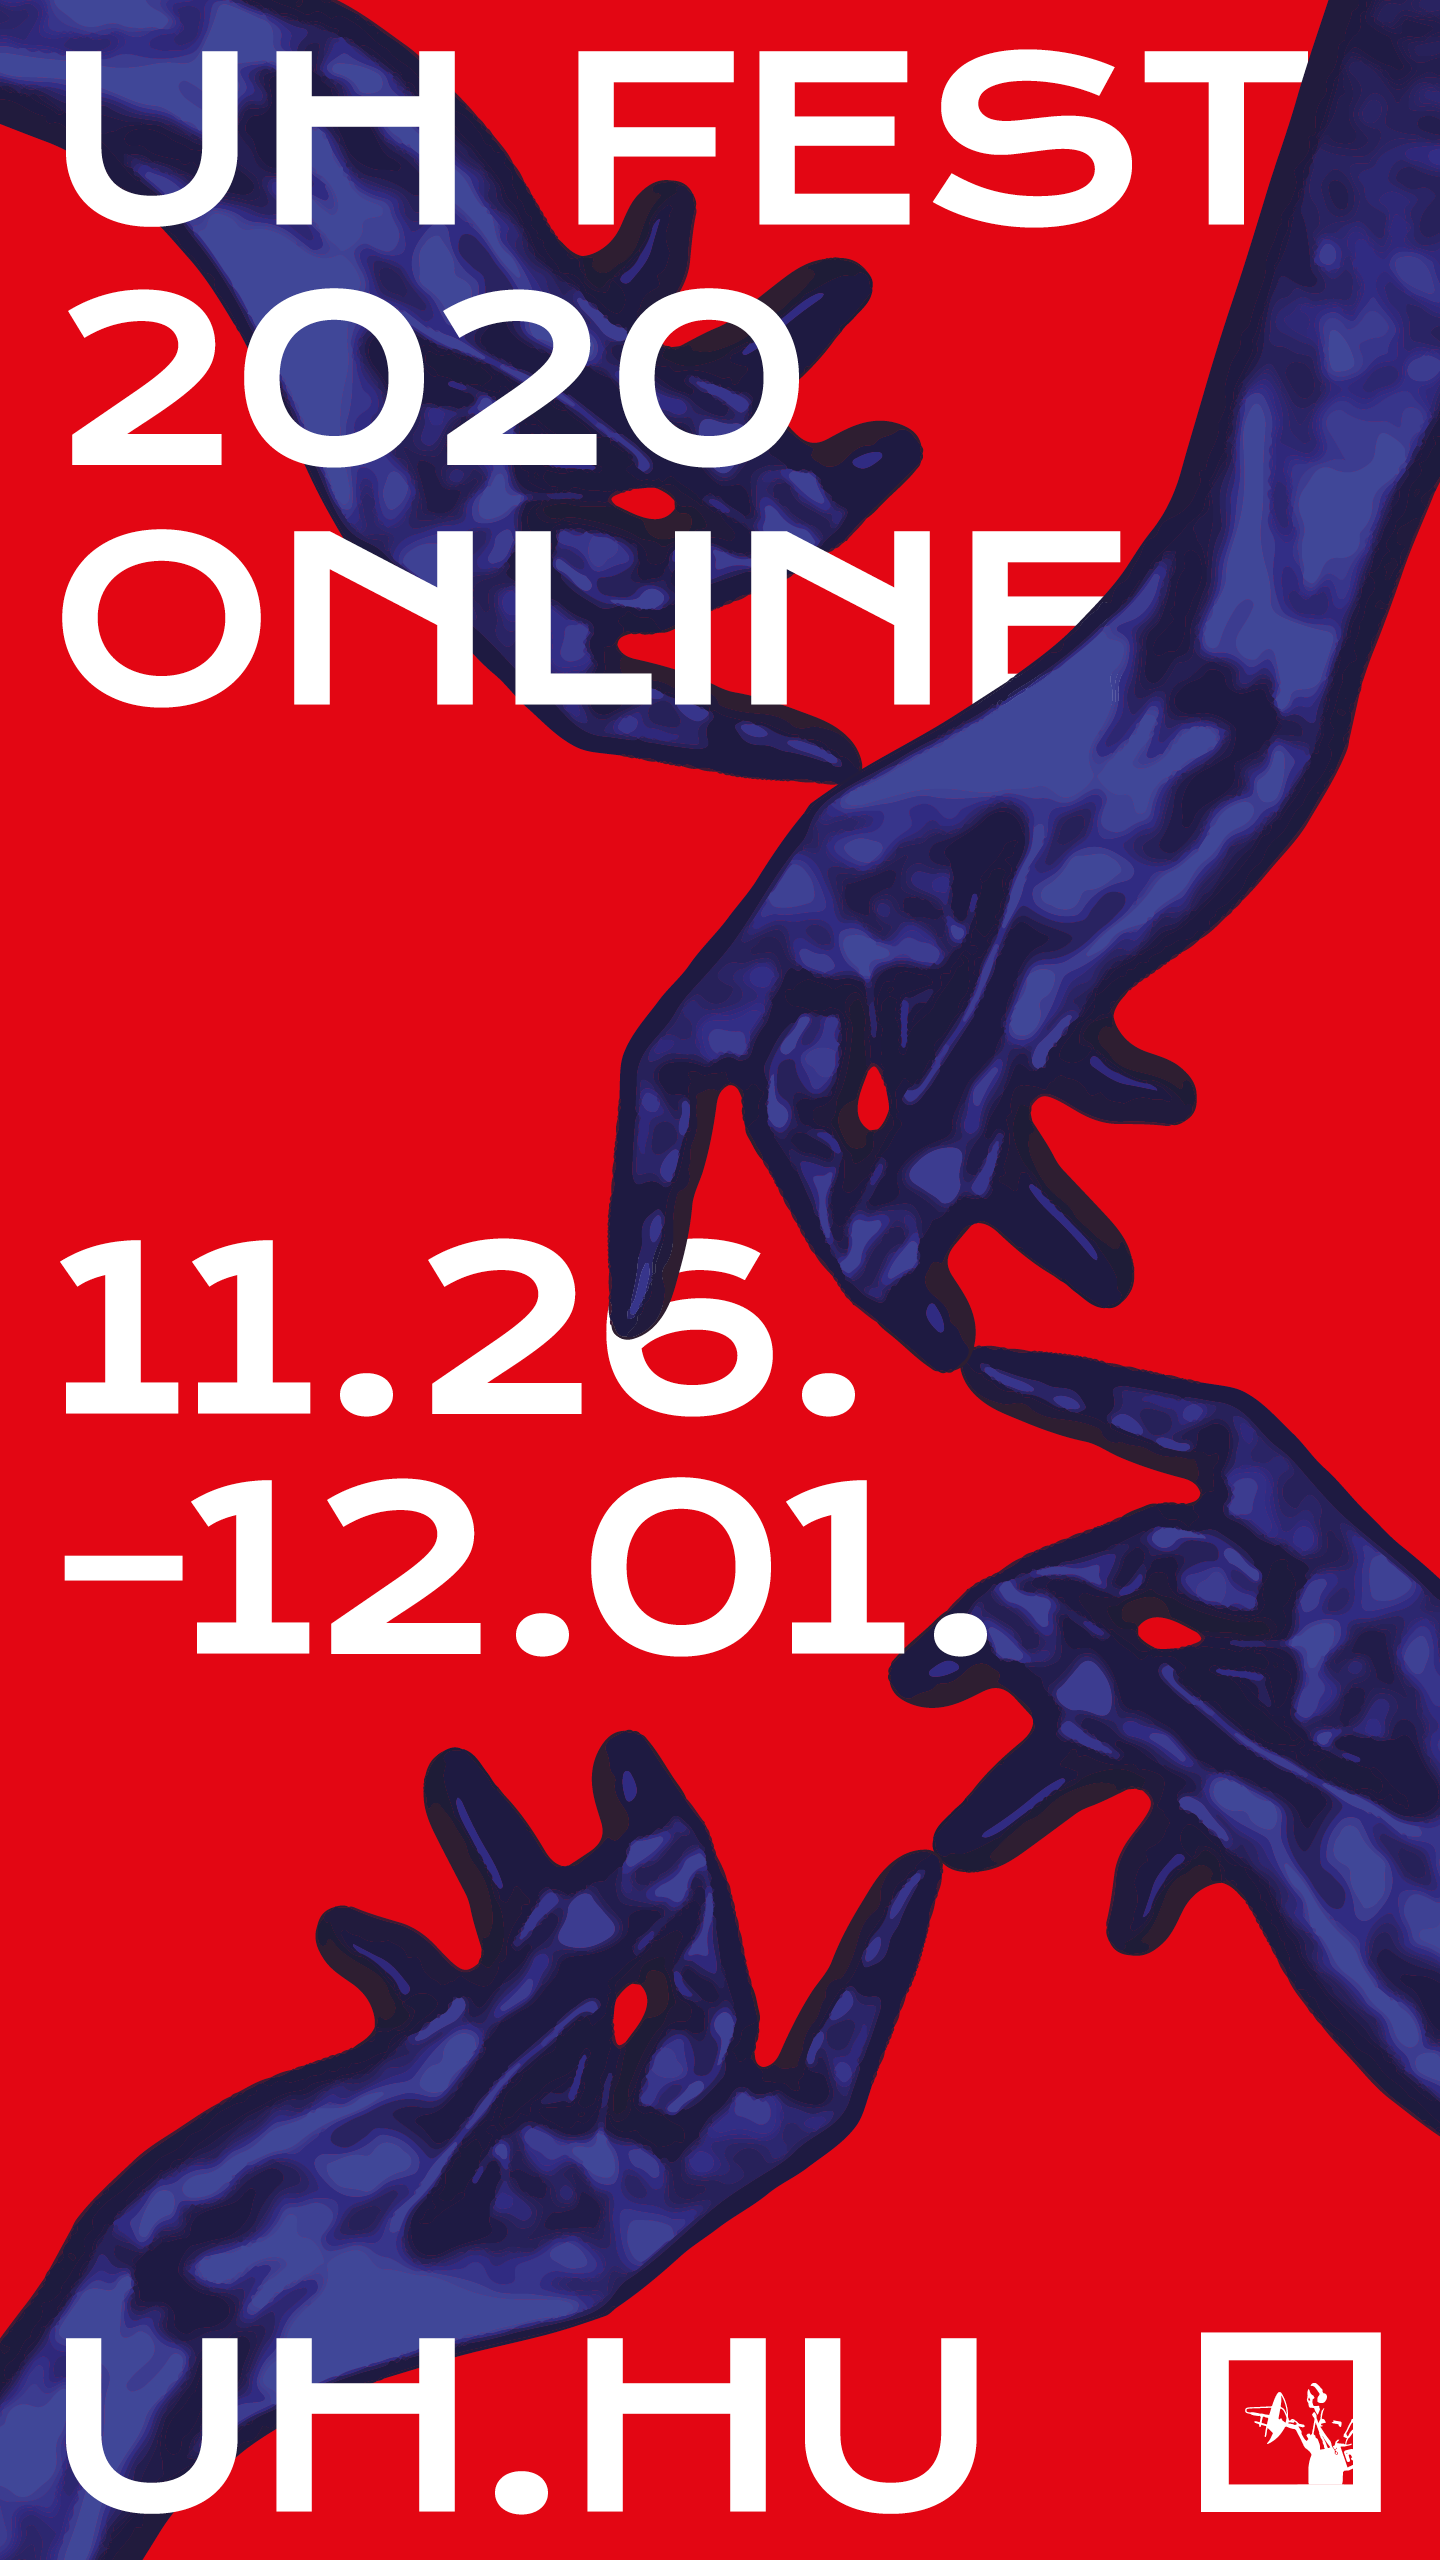 uh_2020_online_promo4.png